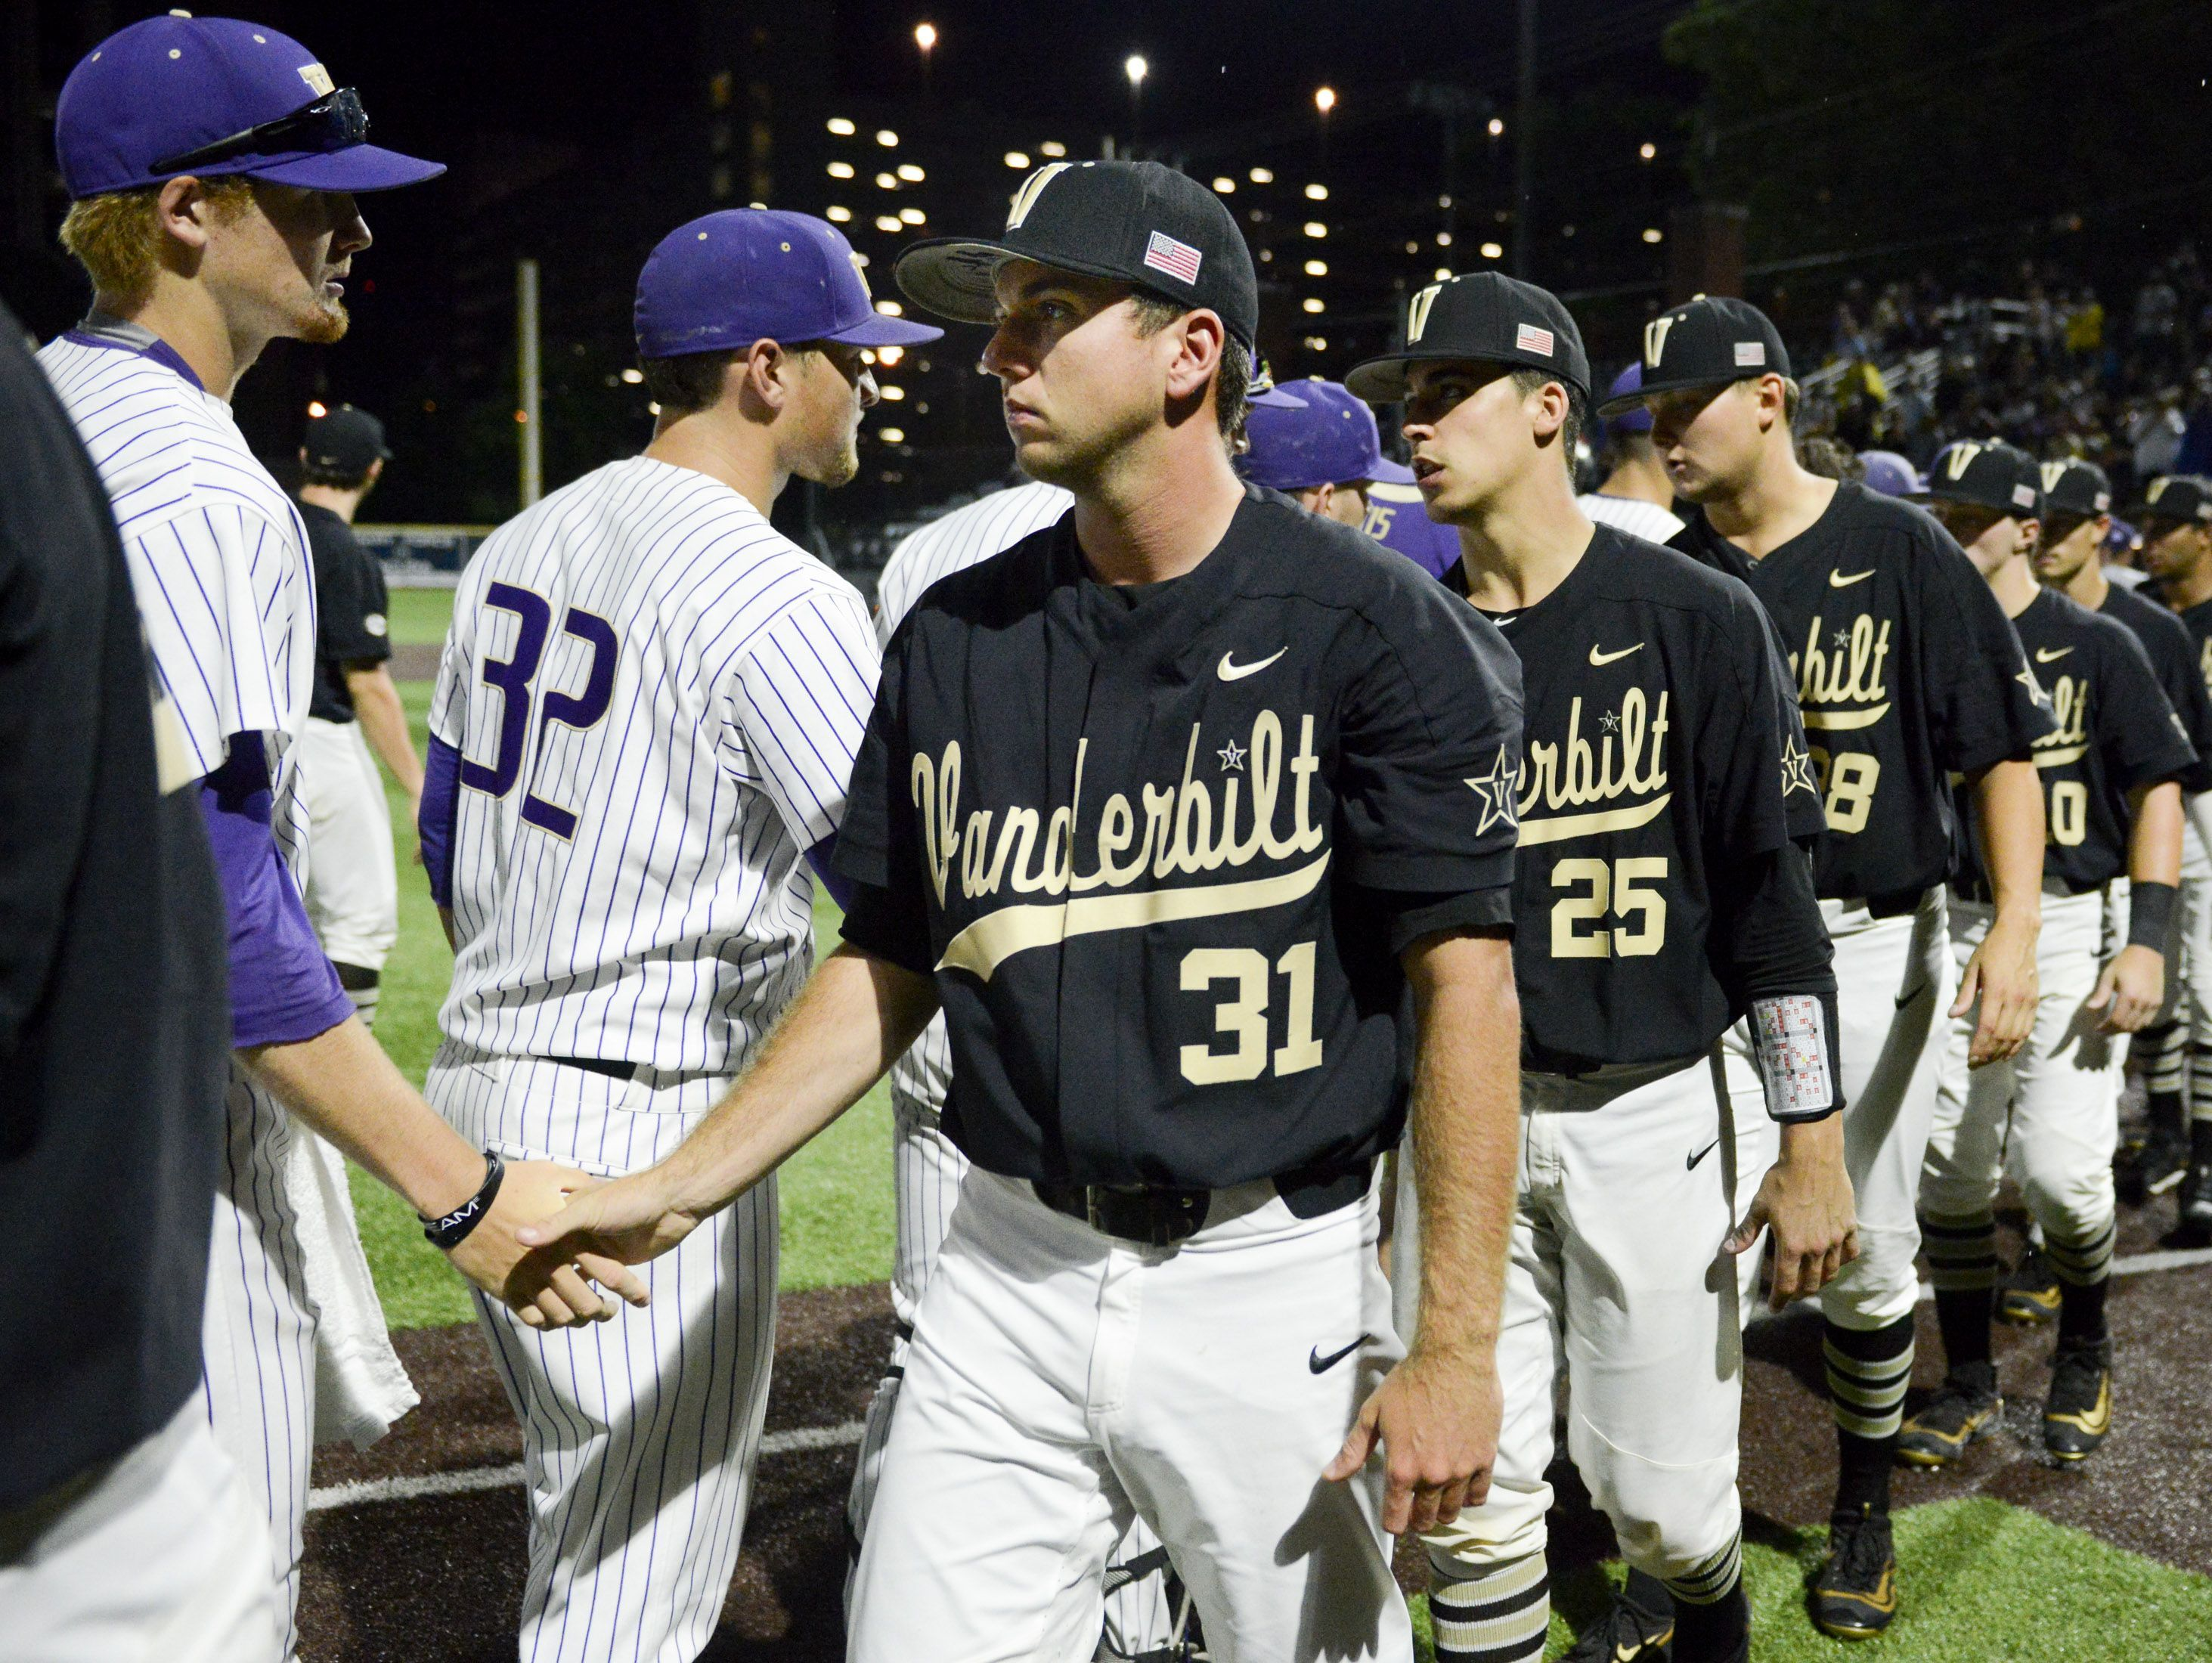 Vanderbilt pitcher Ryan Johnson (31) shakes hands with Washington players after the Commodores' 9-8 loss in the NCAA Regional on Saturday night at Hawkins Field.